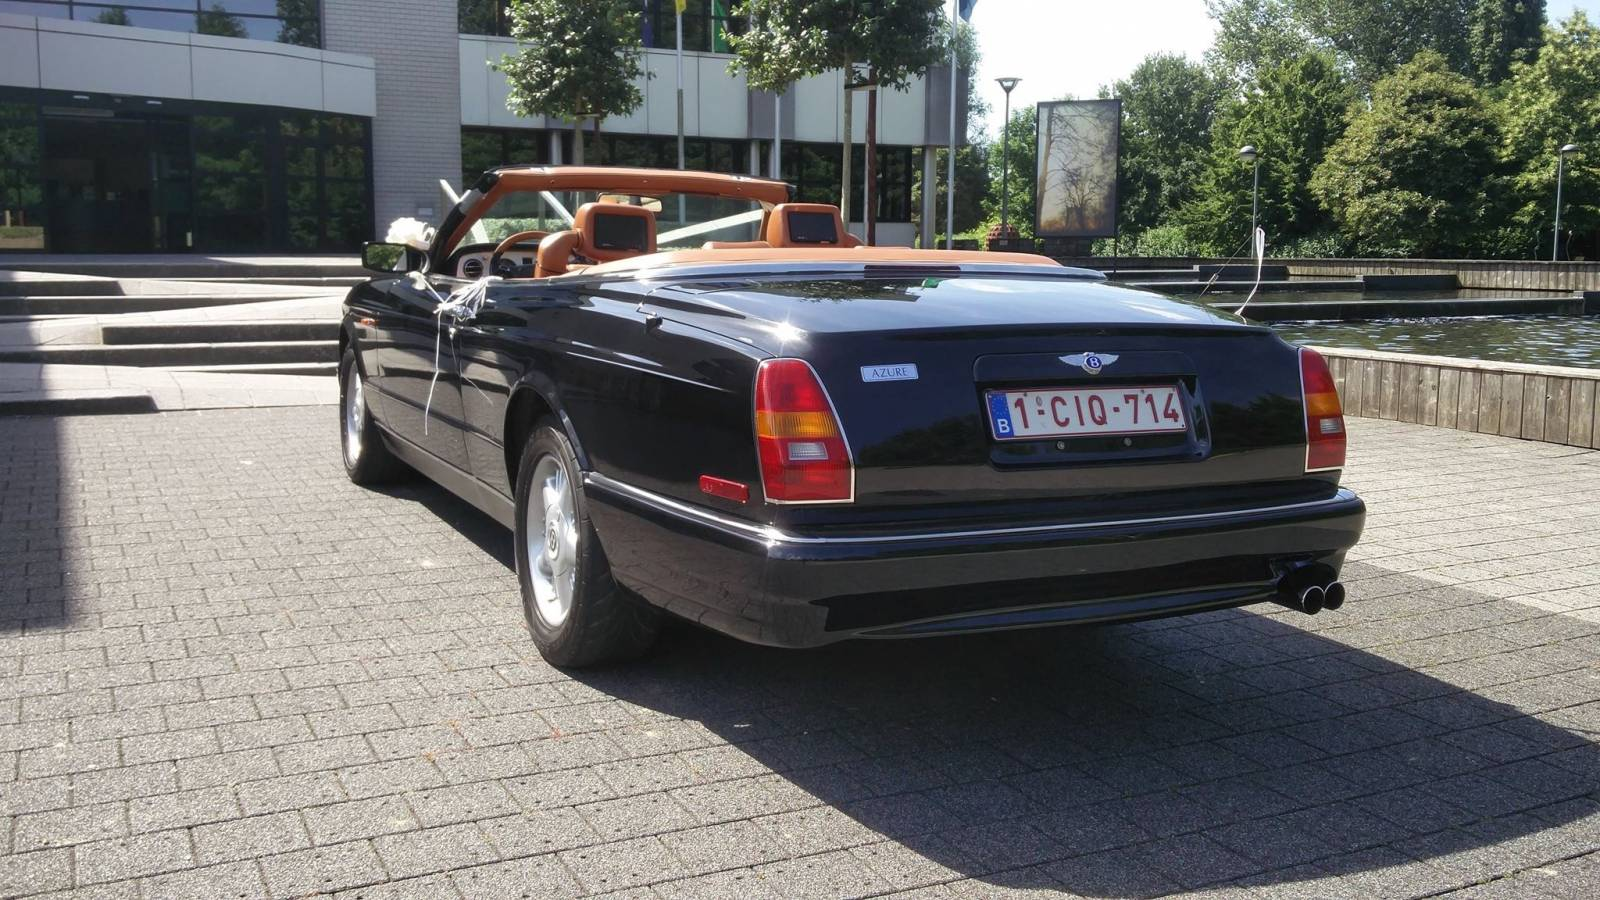 Van Noten Ceremonies - Trouwvervoer - Bentley Azure Cabrio - House of Weddings - 12